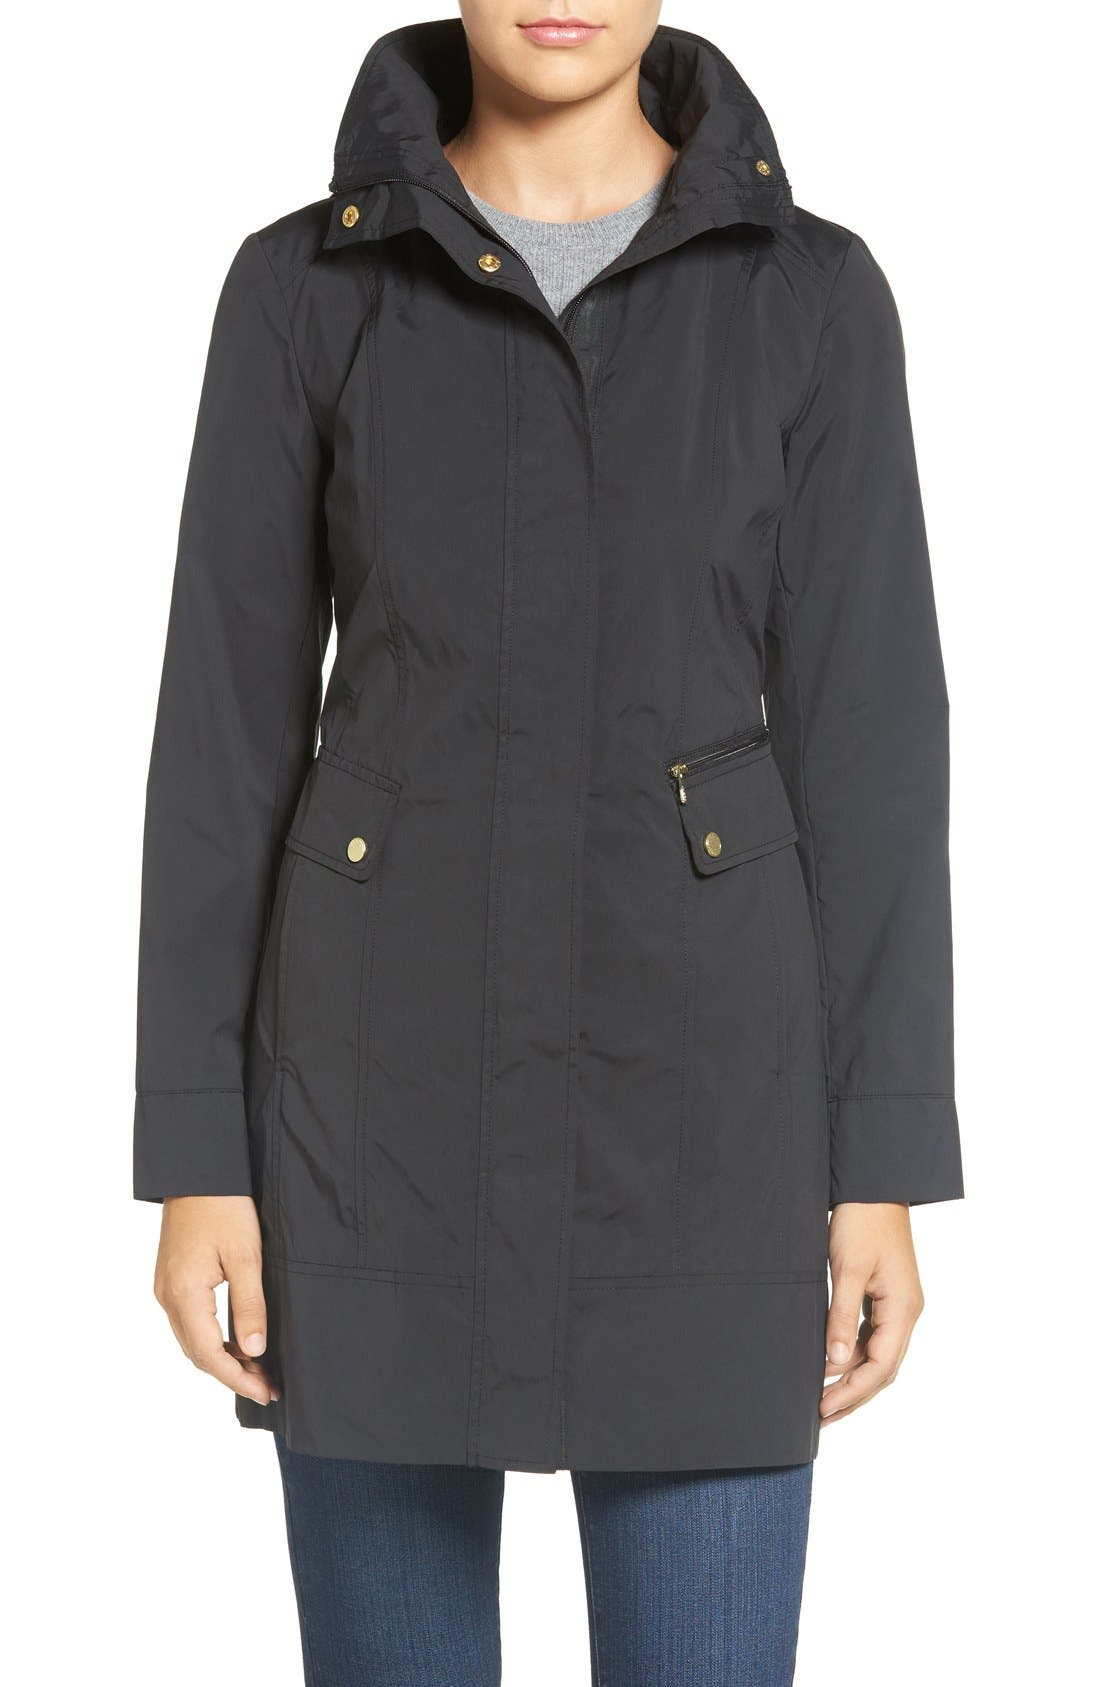 COLE HAAN SIGNATURE Back Bow Packable Hooded Raincoat, Main, color, BLACK